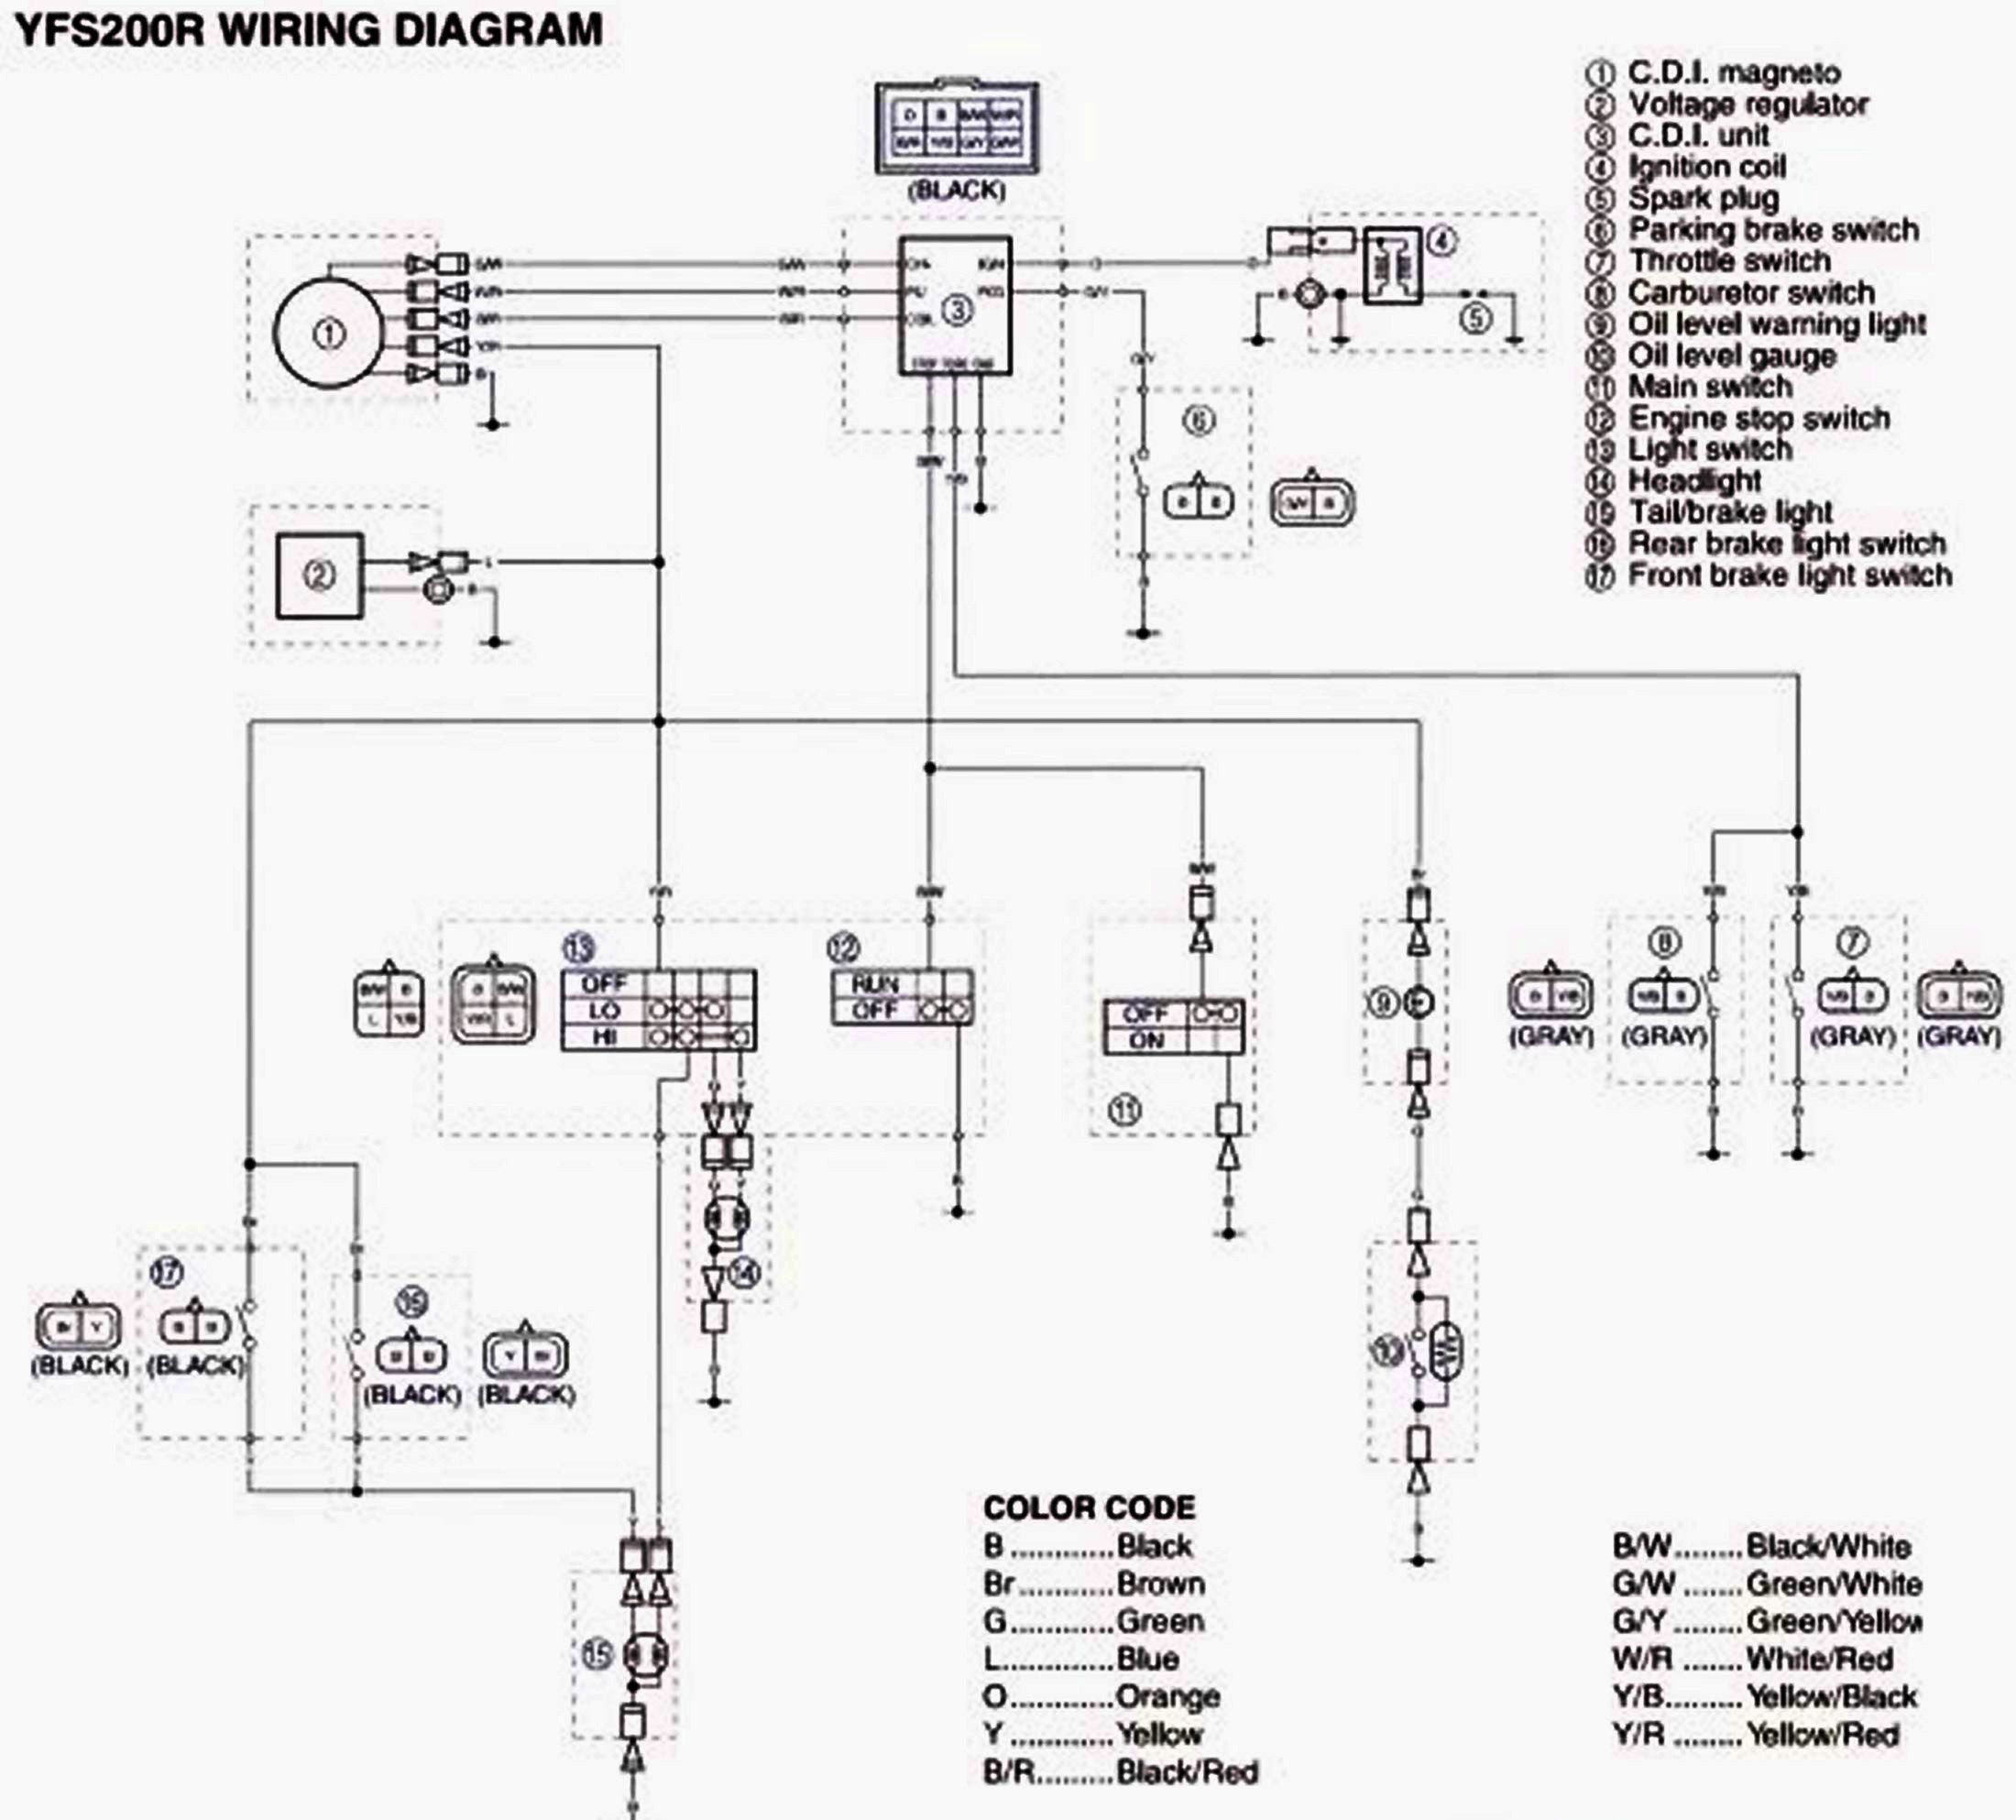 stock wiring diagrams blasterforum com yamaha warrior stator wiring diagram at eliteediting.co